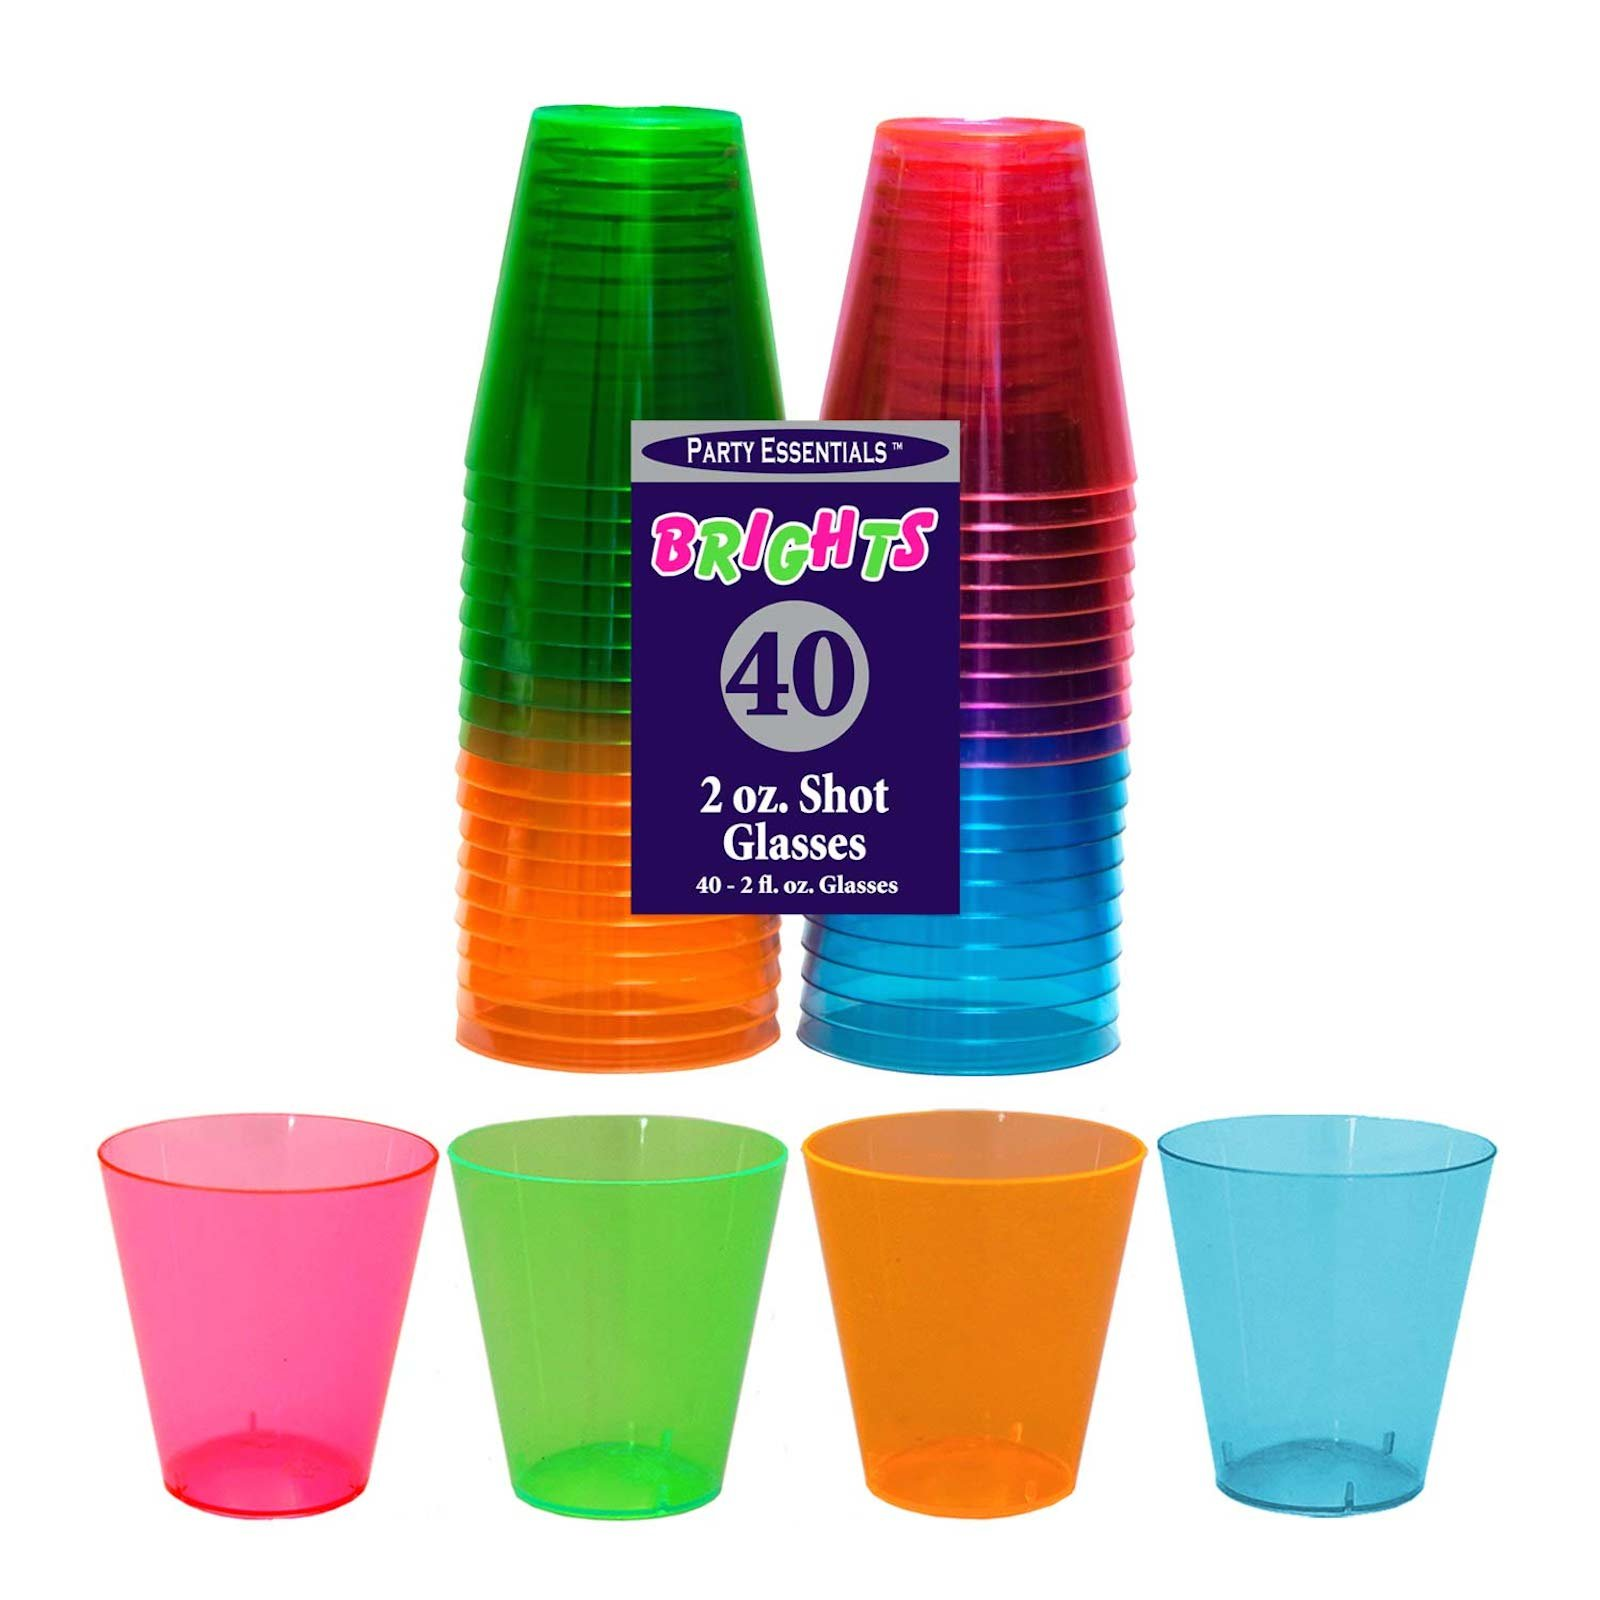 Party Essentials Hard Plastic Shot Glasses, 2 oz, Assorted Neon Colors (Pack of 800)